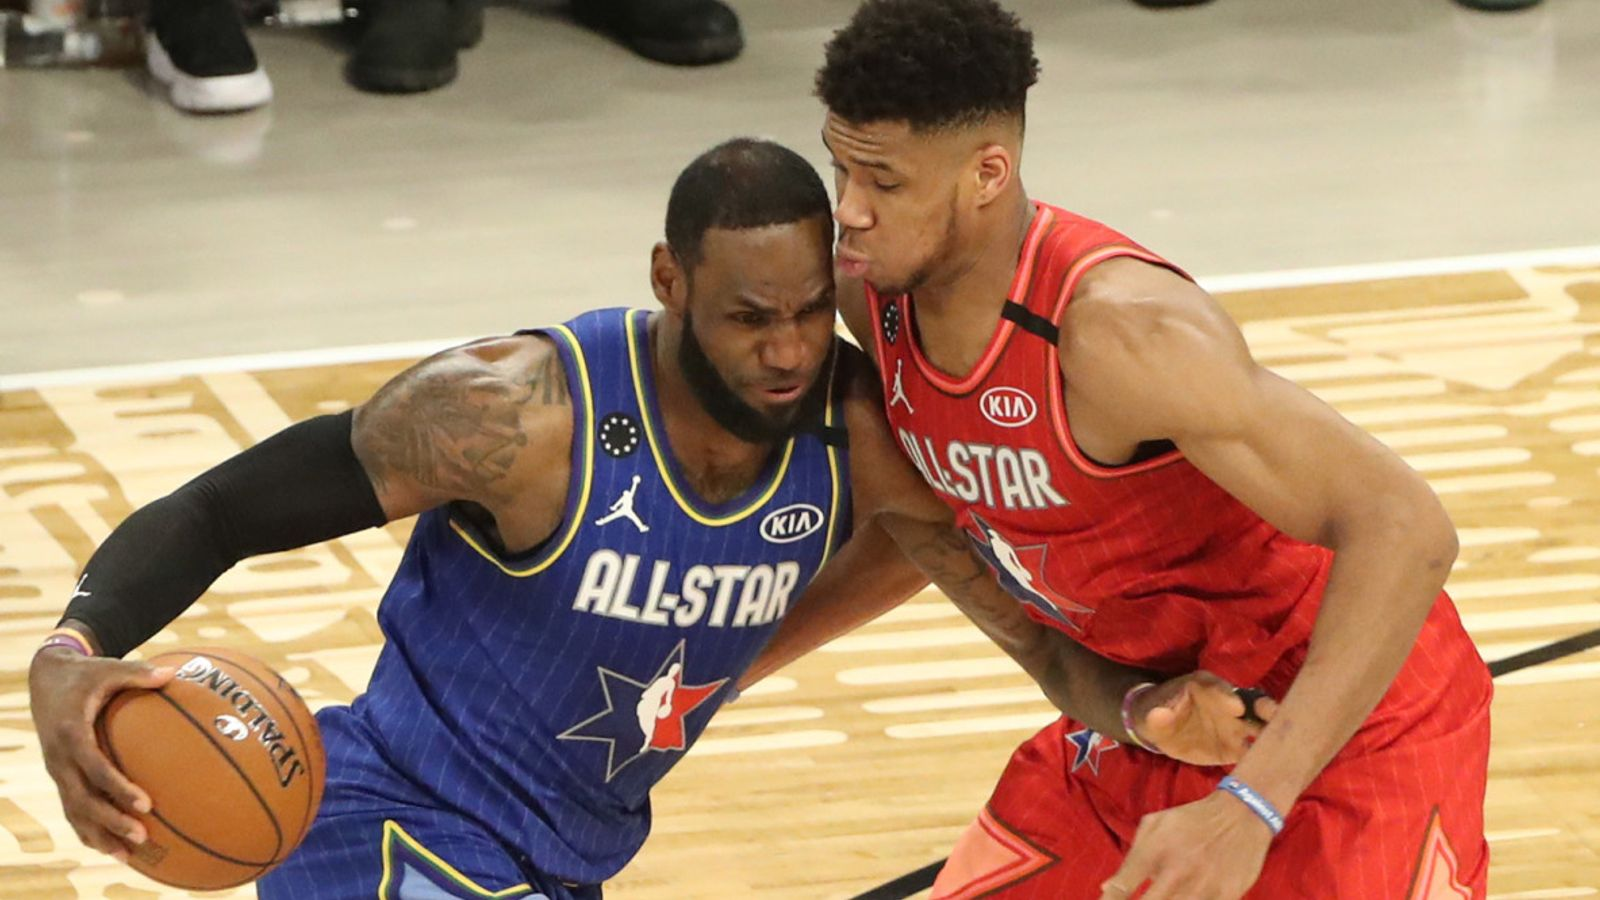 All-Star 2020: Relive all the action from the 2020 All-Star Weekend